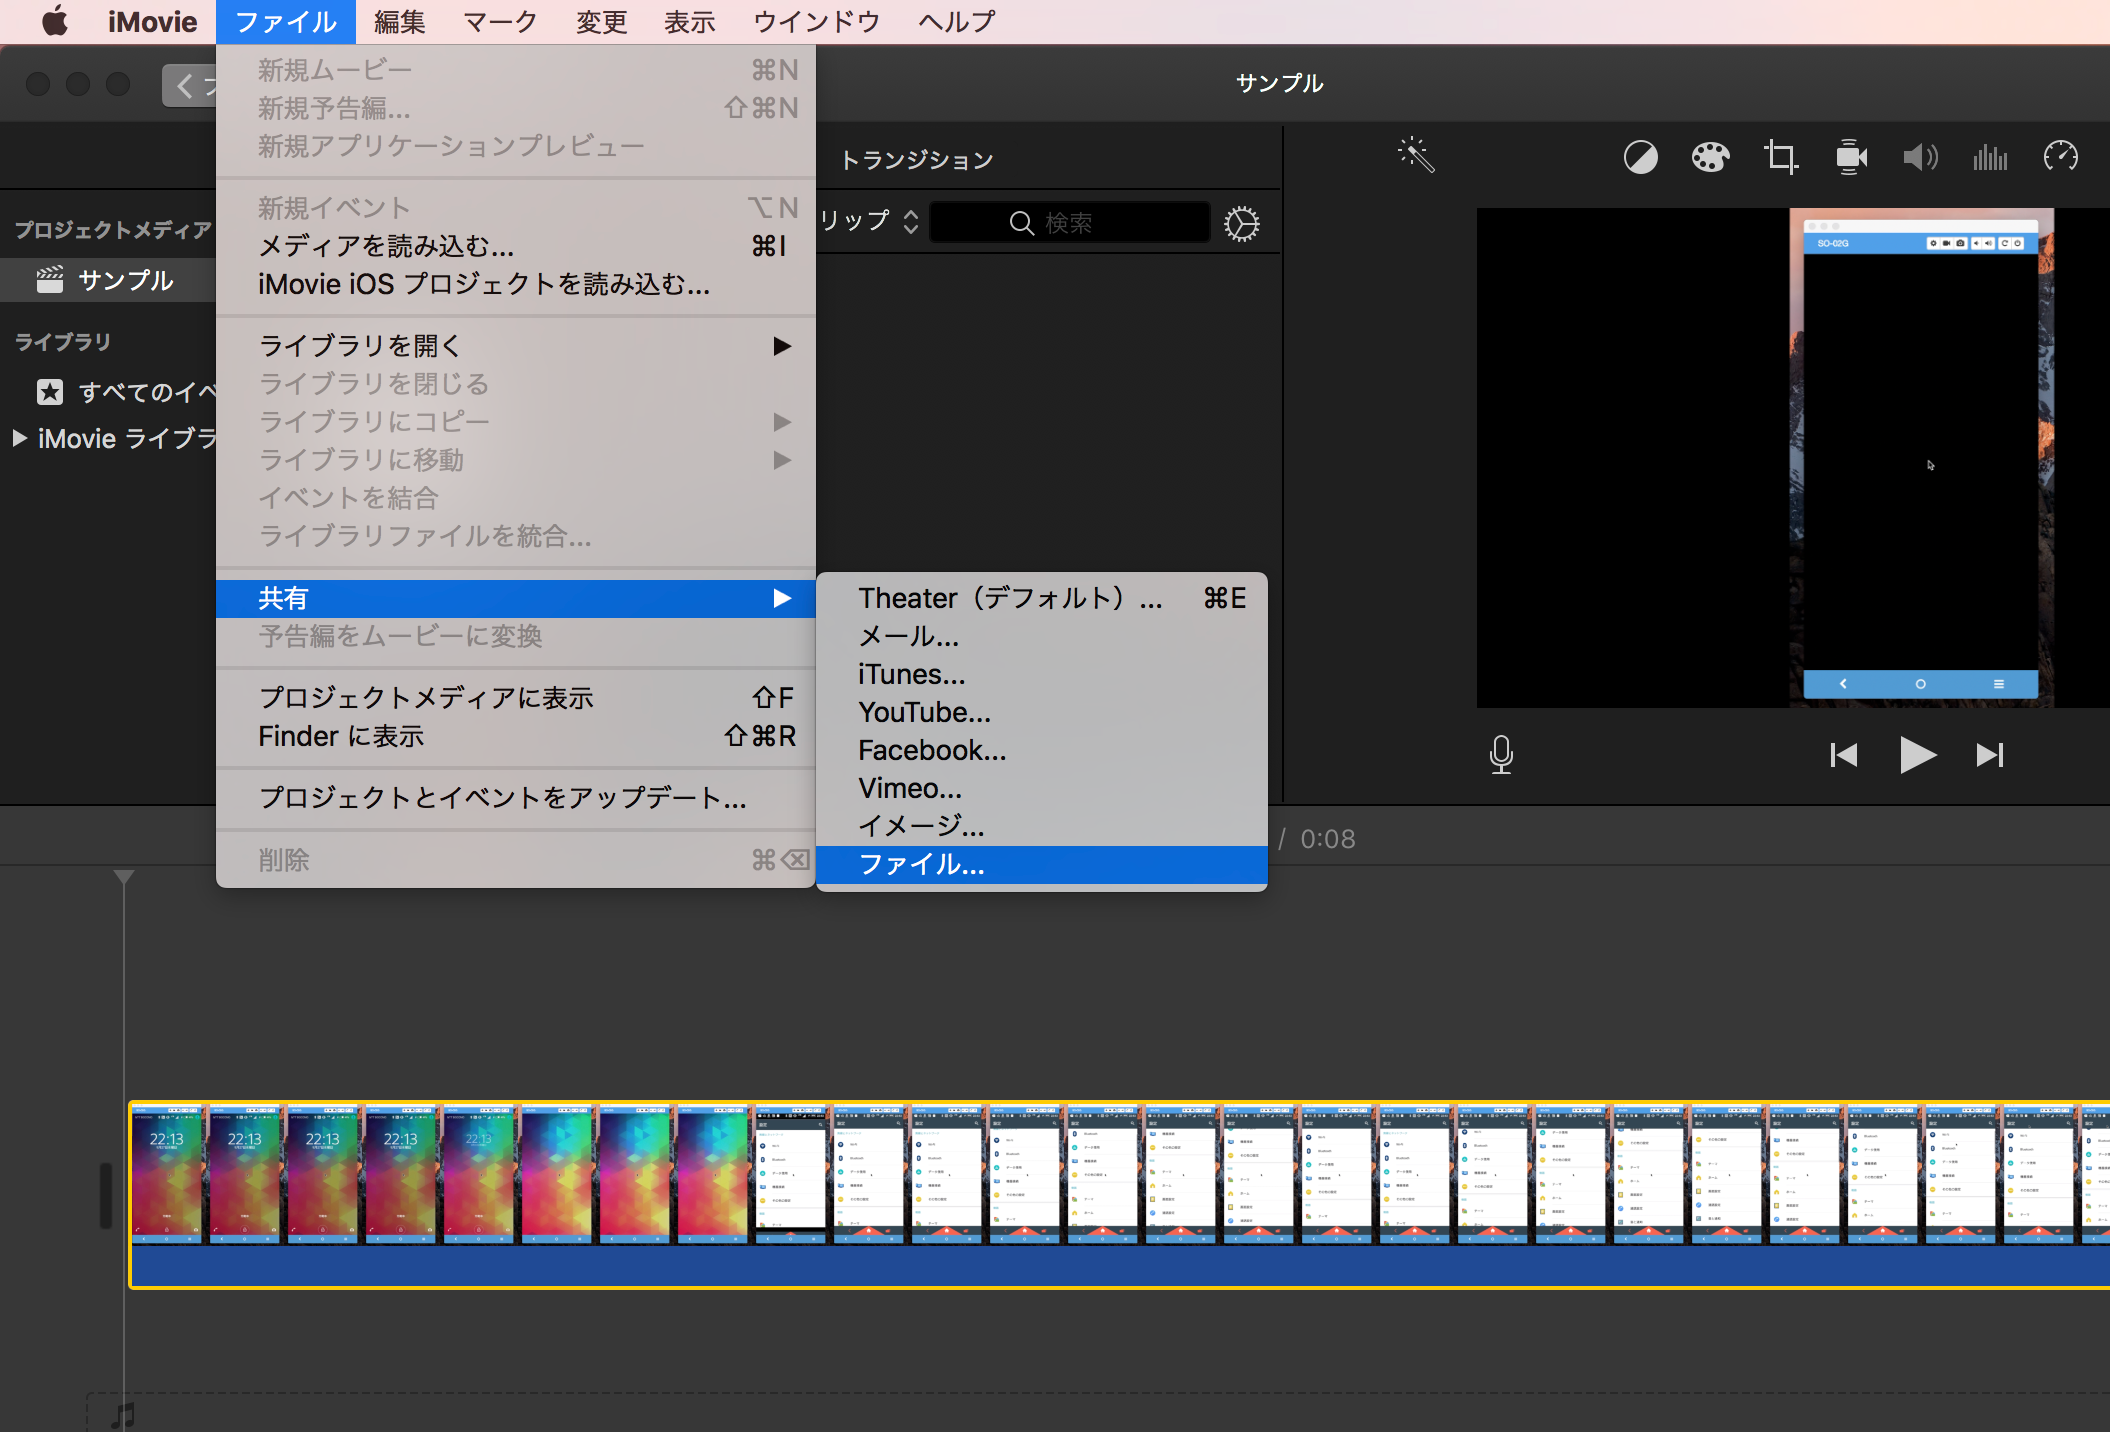 imovie1.png